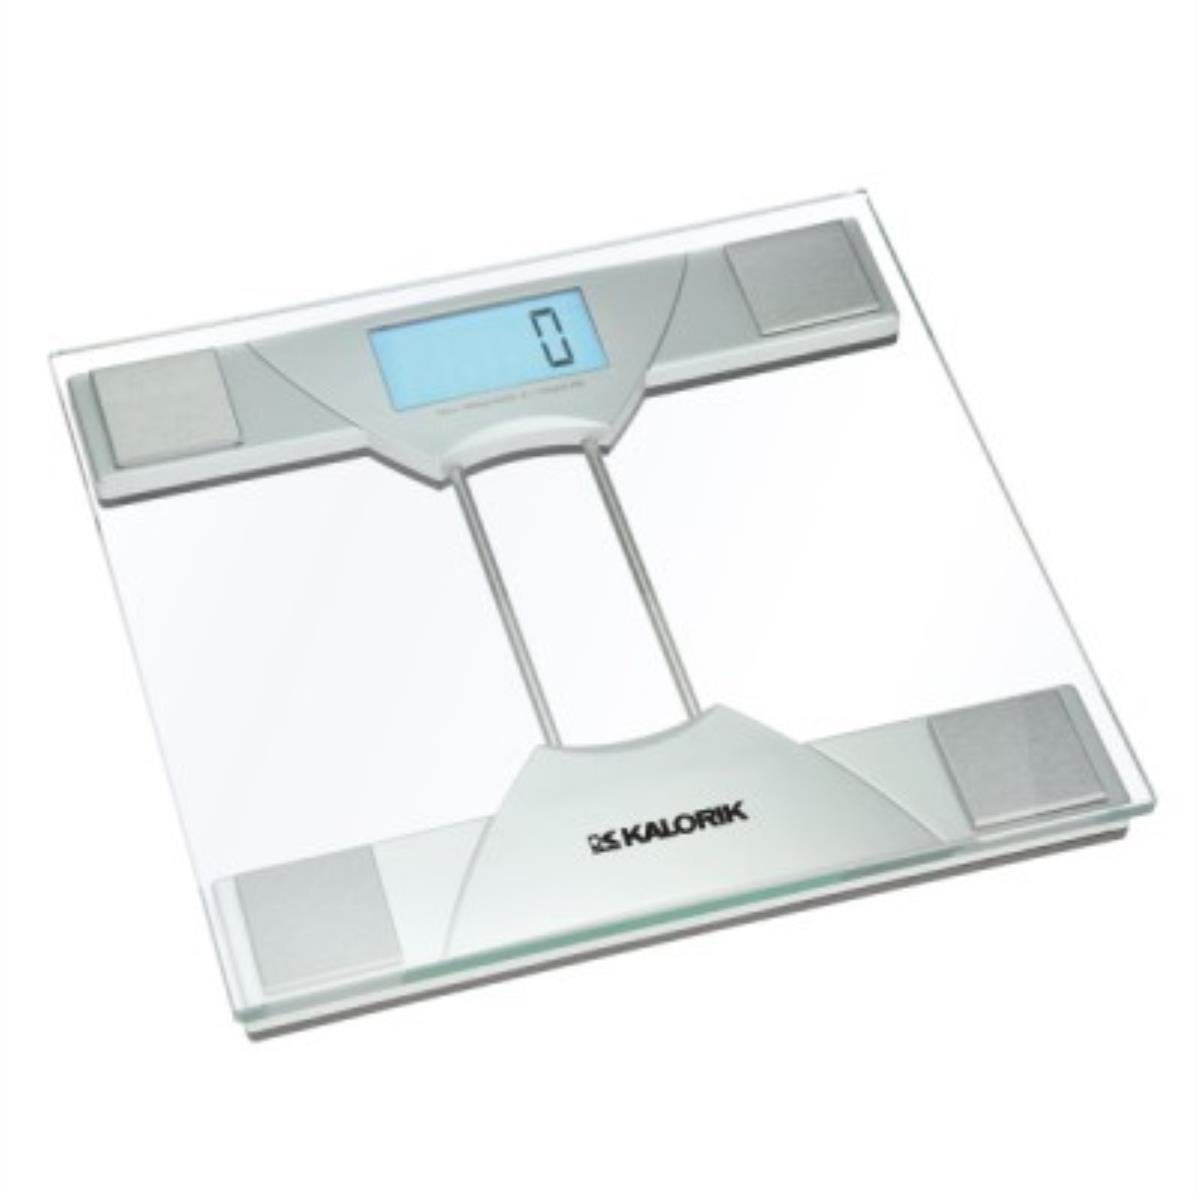 Beau Amazon.com: Kalorik Electronic Bathroom Scale, Silver/Clear: Kitchen U0026  Dining